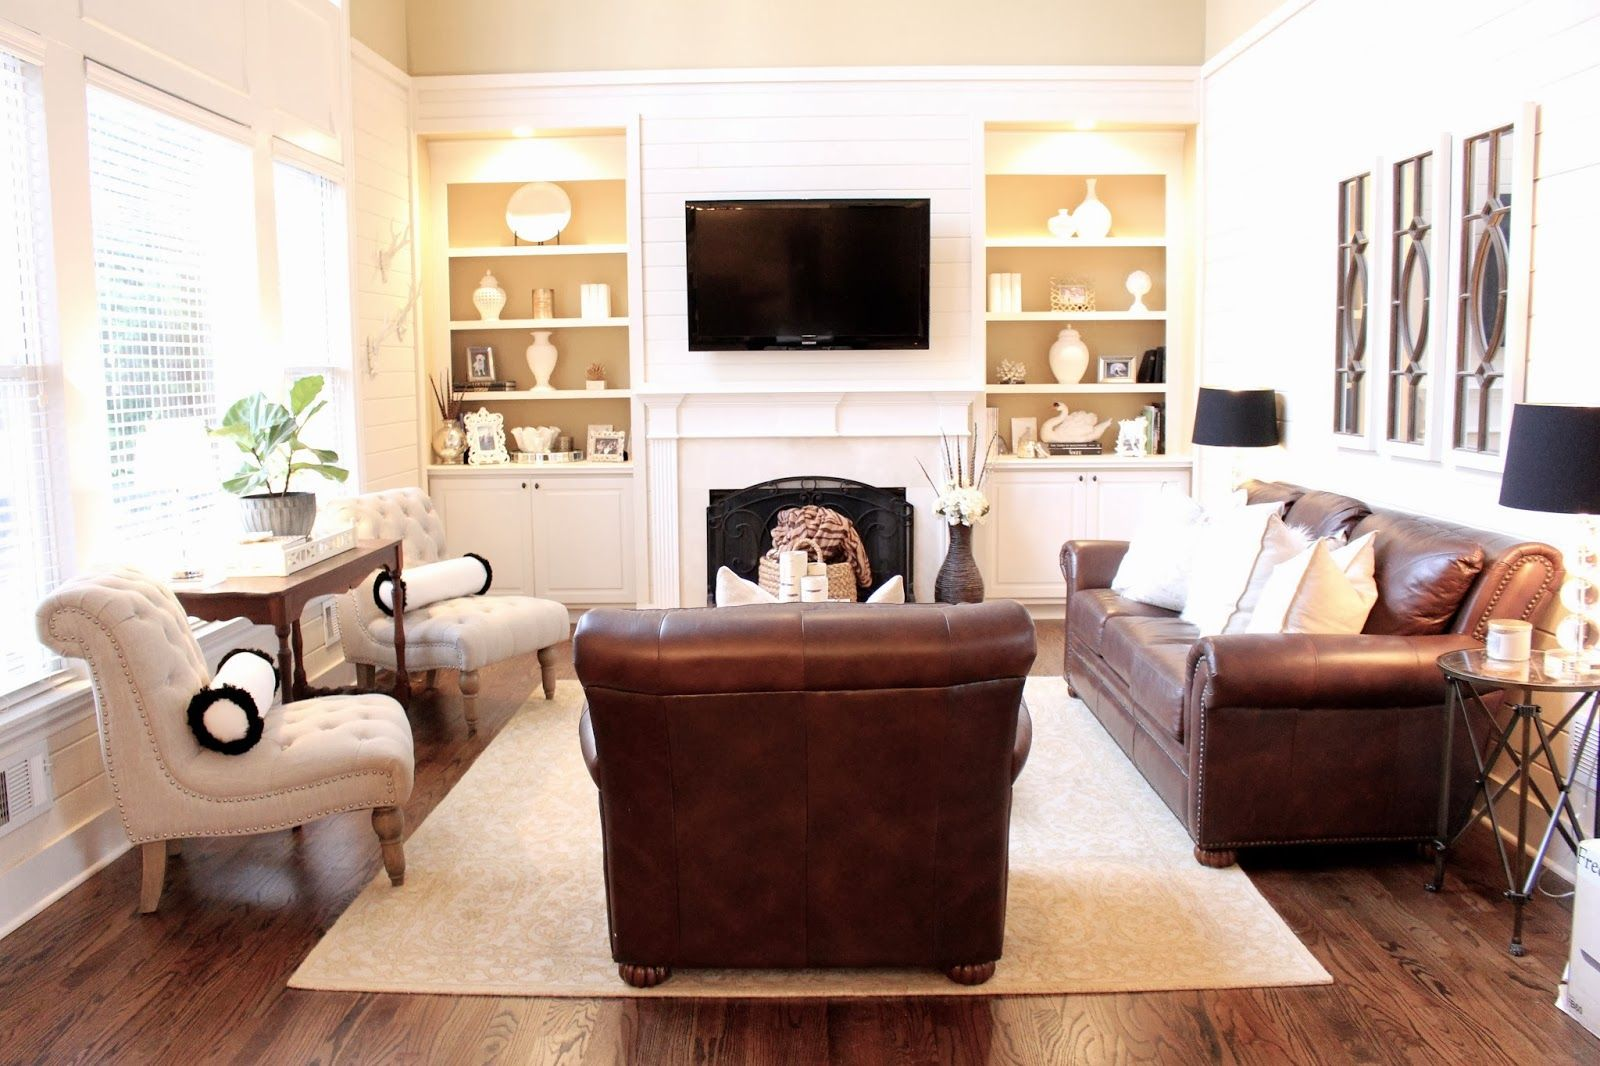 Brown Leather Sofa Accent Chair Lazy Boy Recliner New Year Family Room Changes Living Spaces